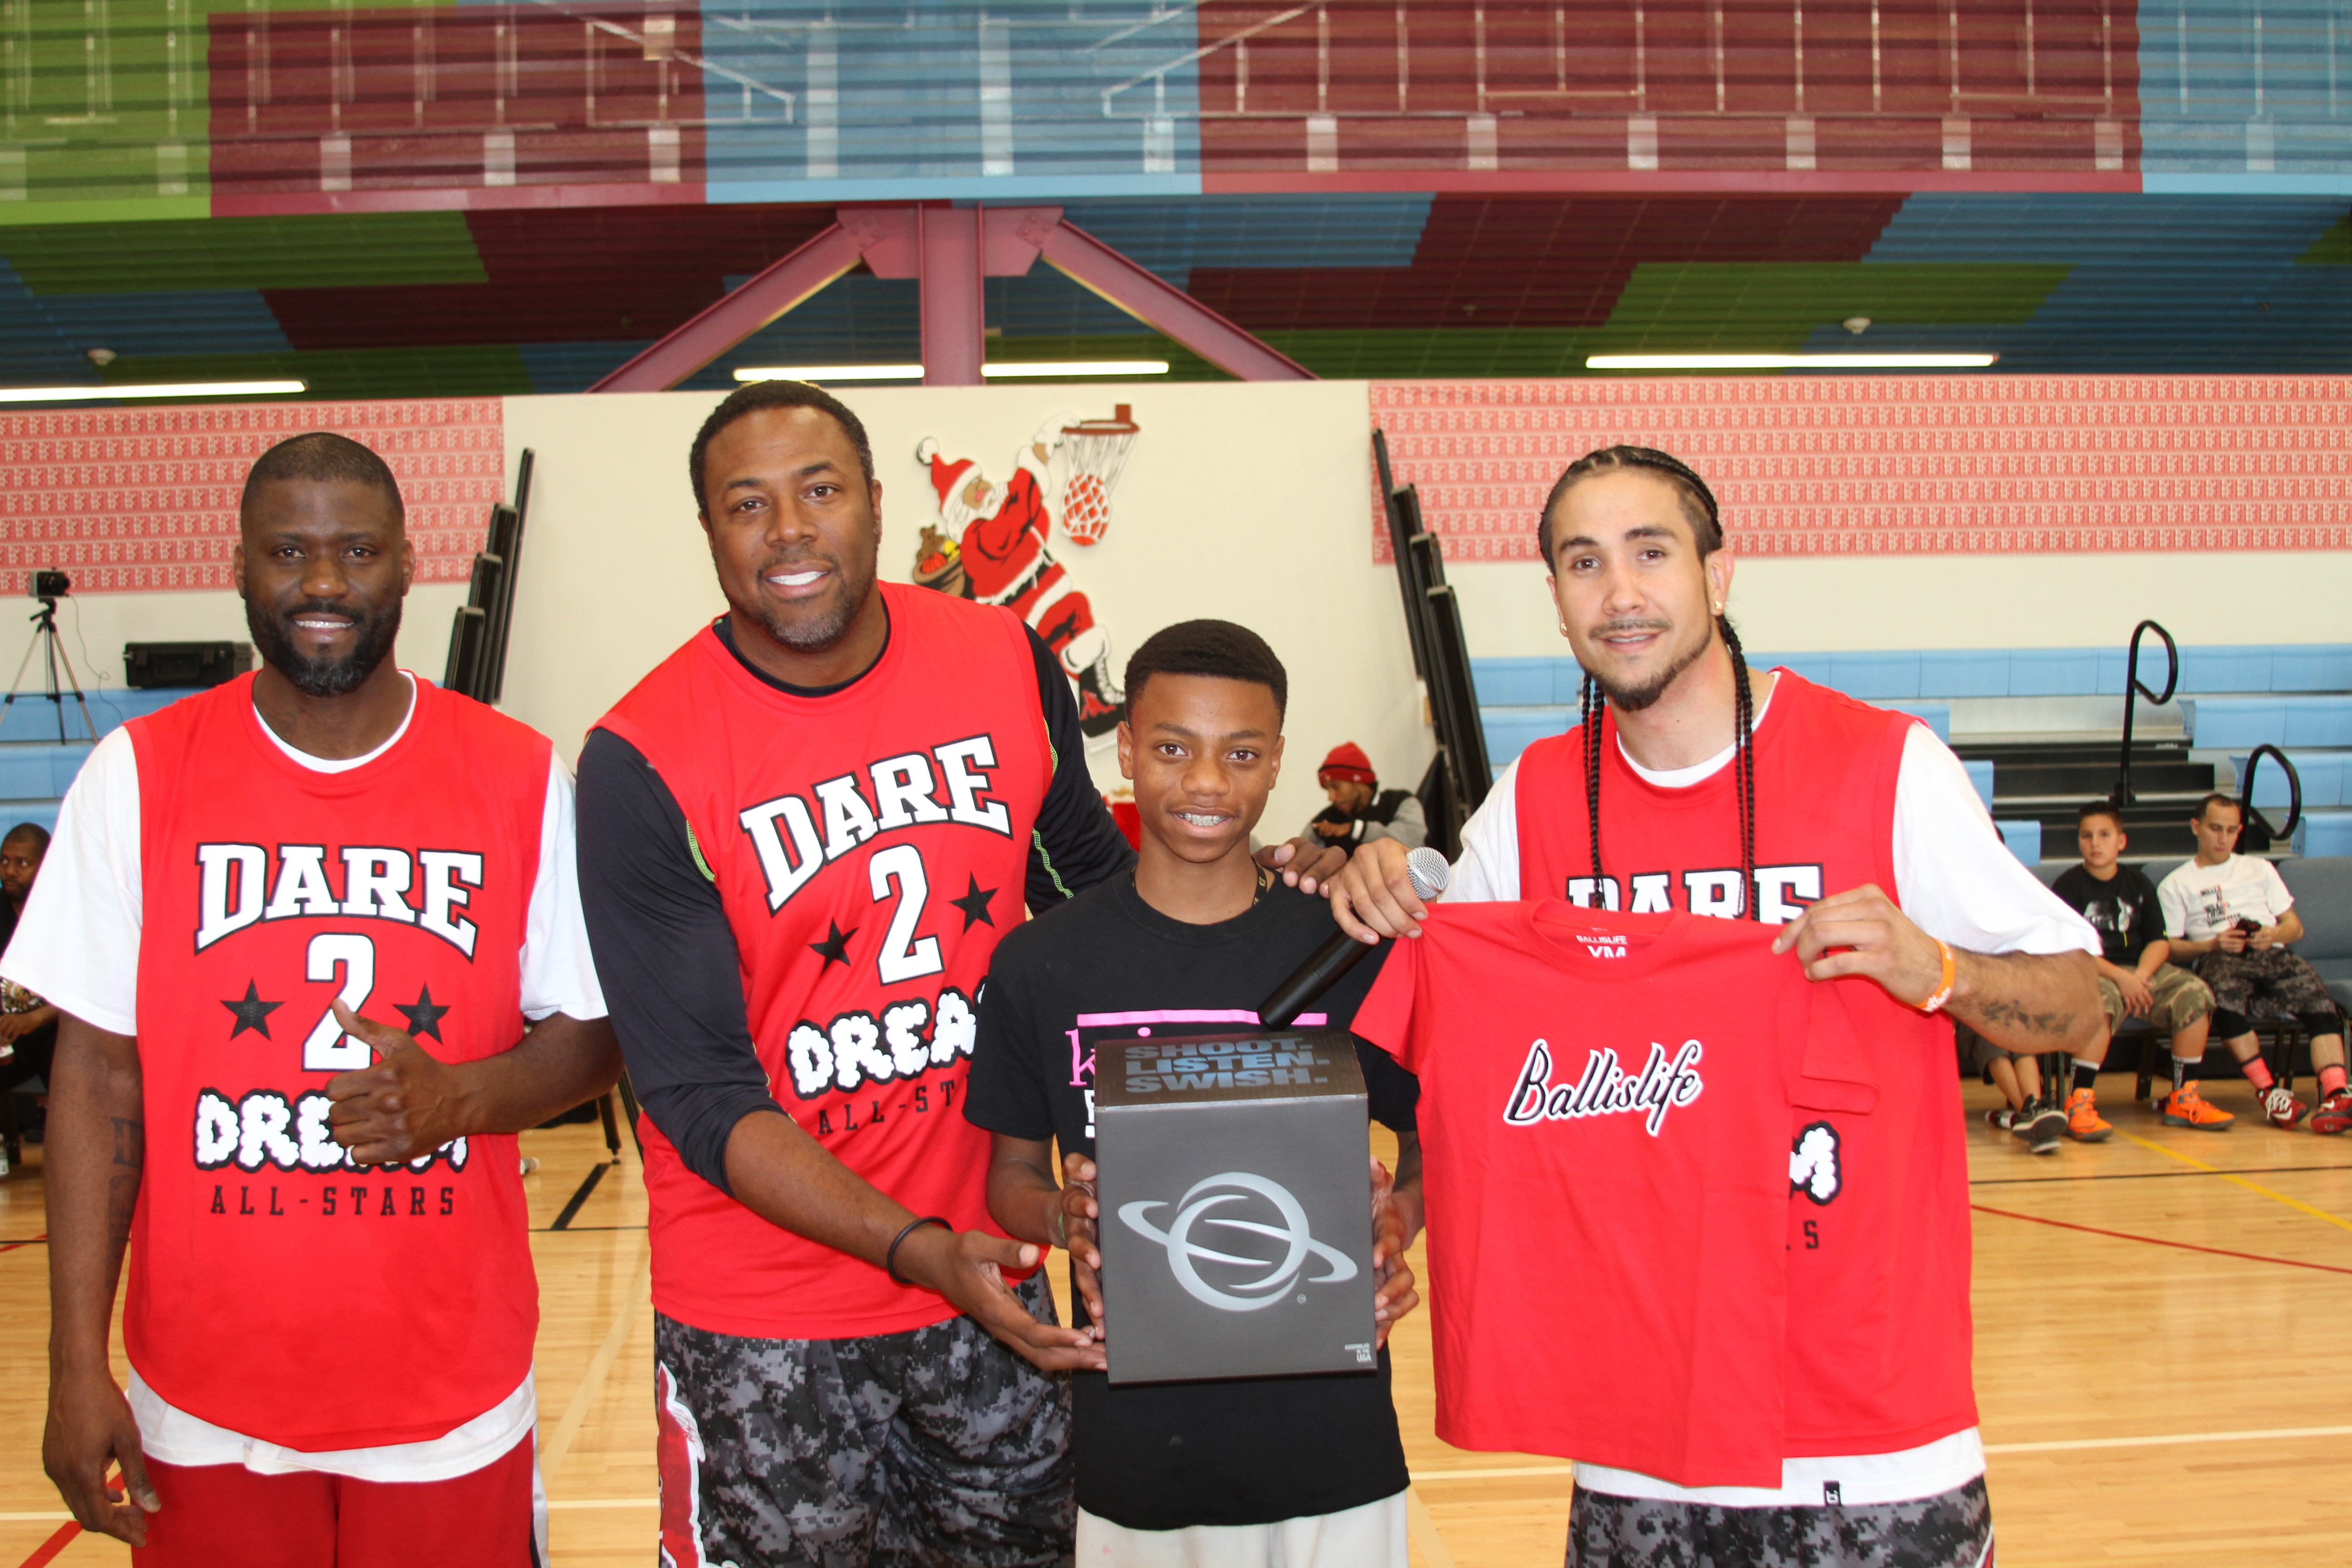 Dunk Champions JR Rider & Cedric Ceballos at the Kenny Dobbs Dare2Dream Toy Drive